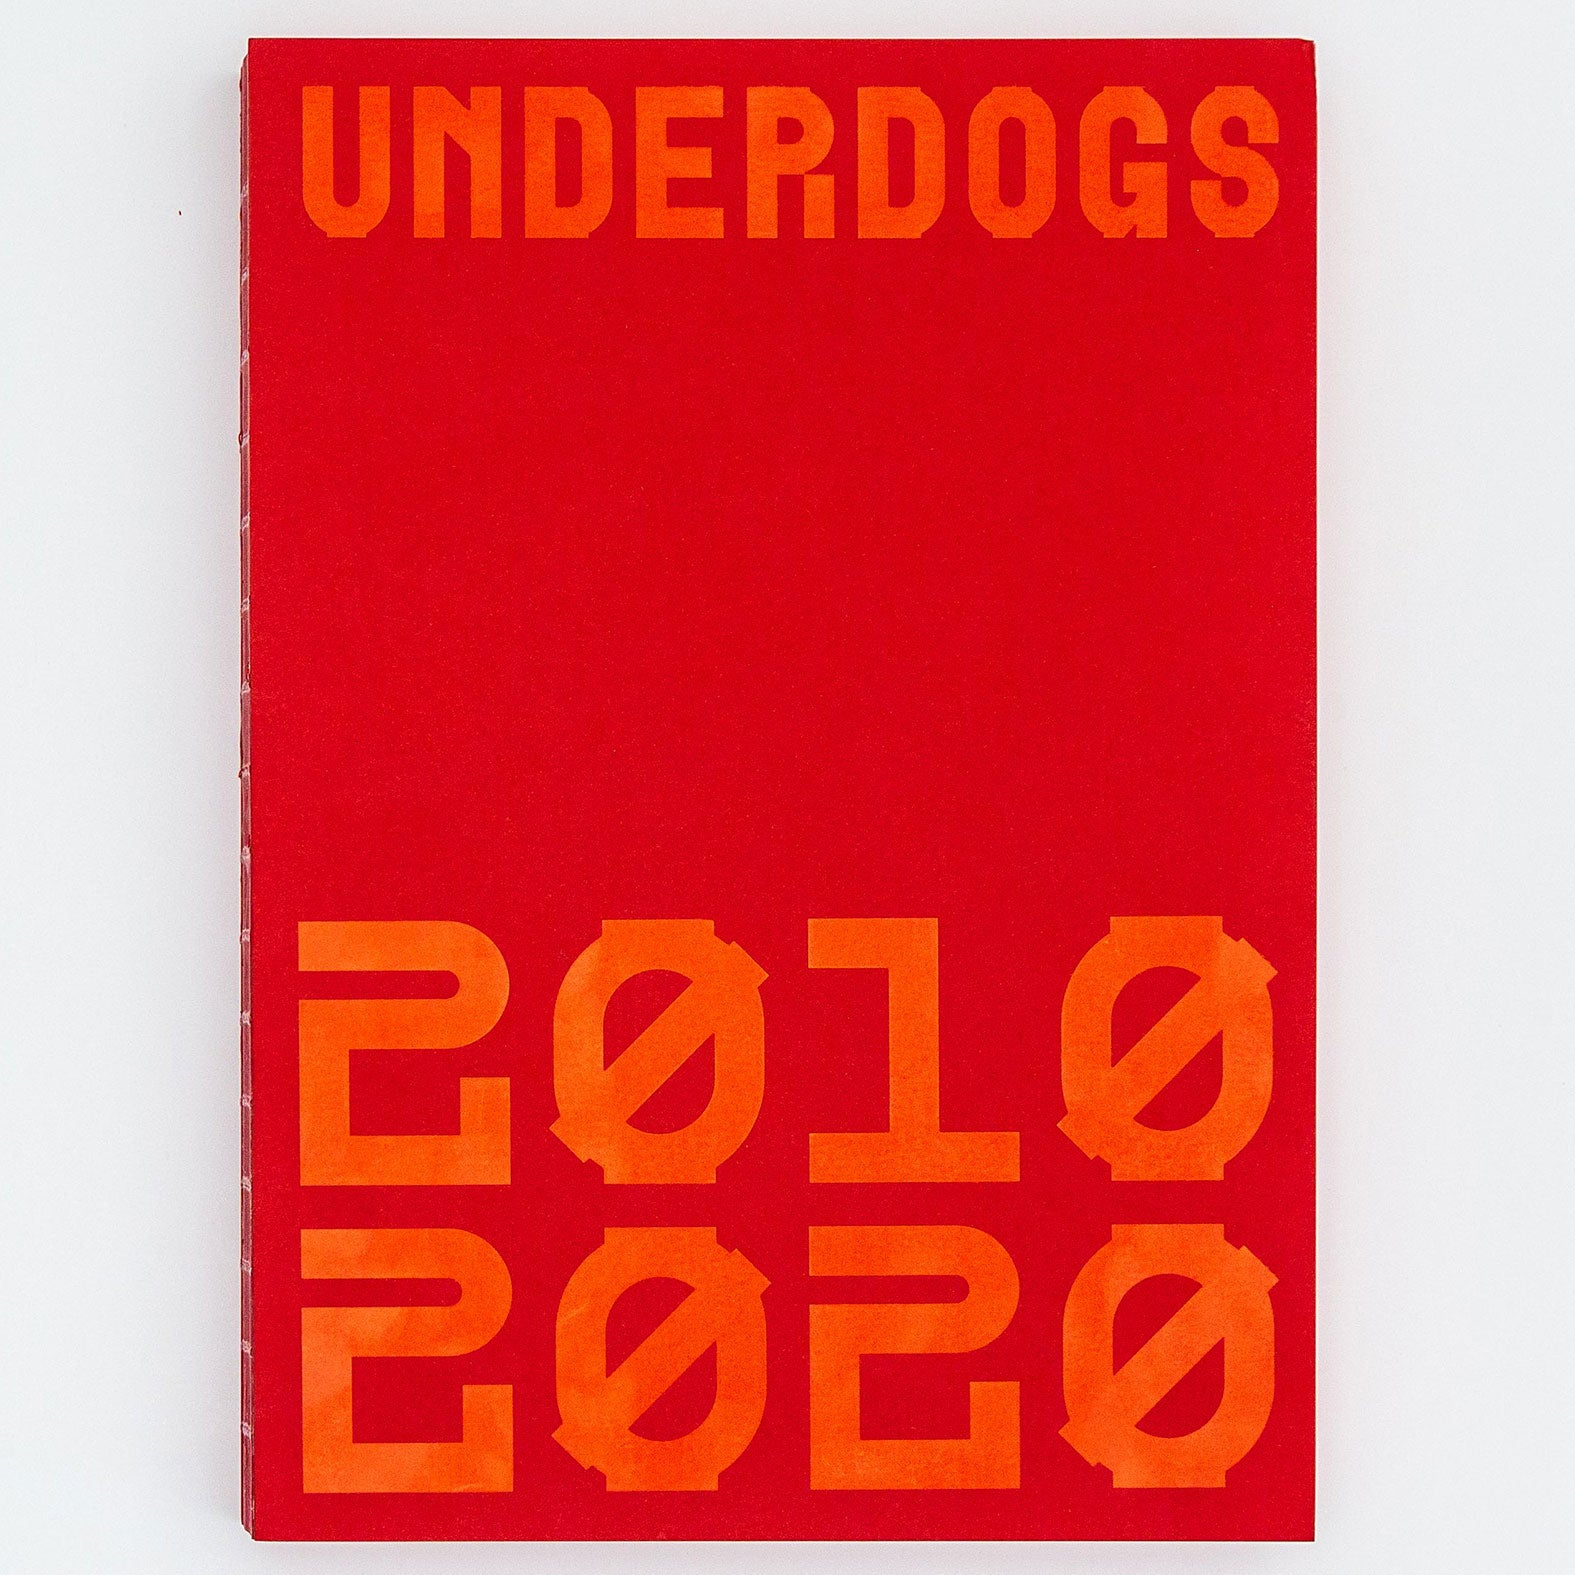 Underdogs Artists – a decade [2010-2020]